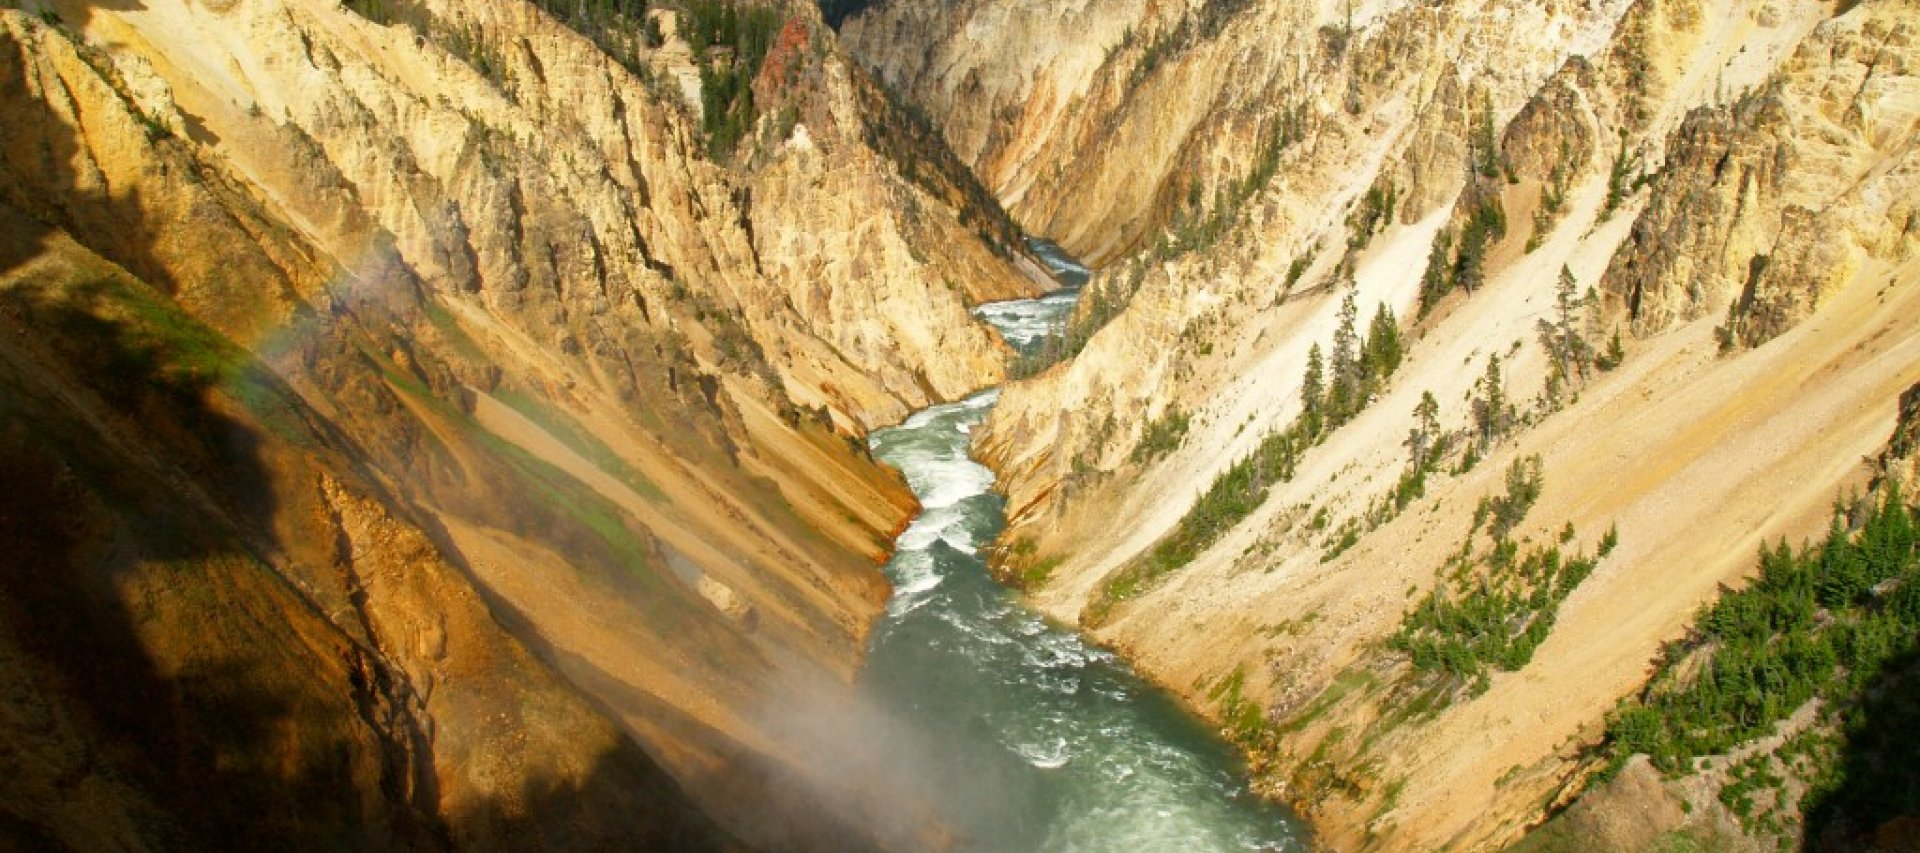 Yellowstone and Grand Teton have so much to offer – wildlife, wild views, wild hikes, and also mellow hikes.